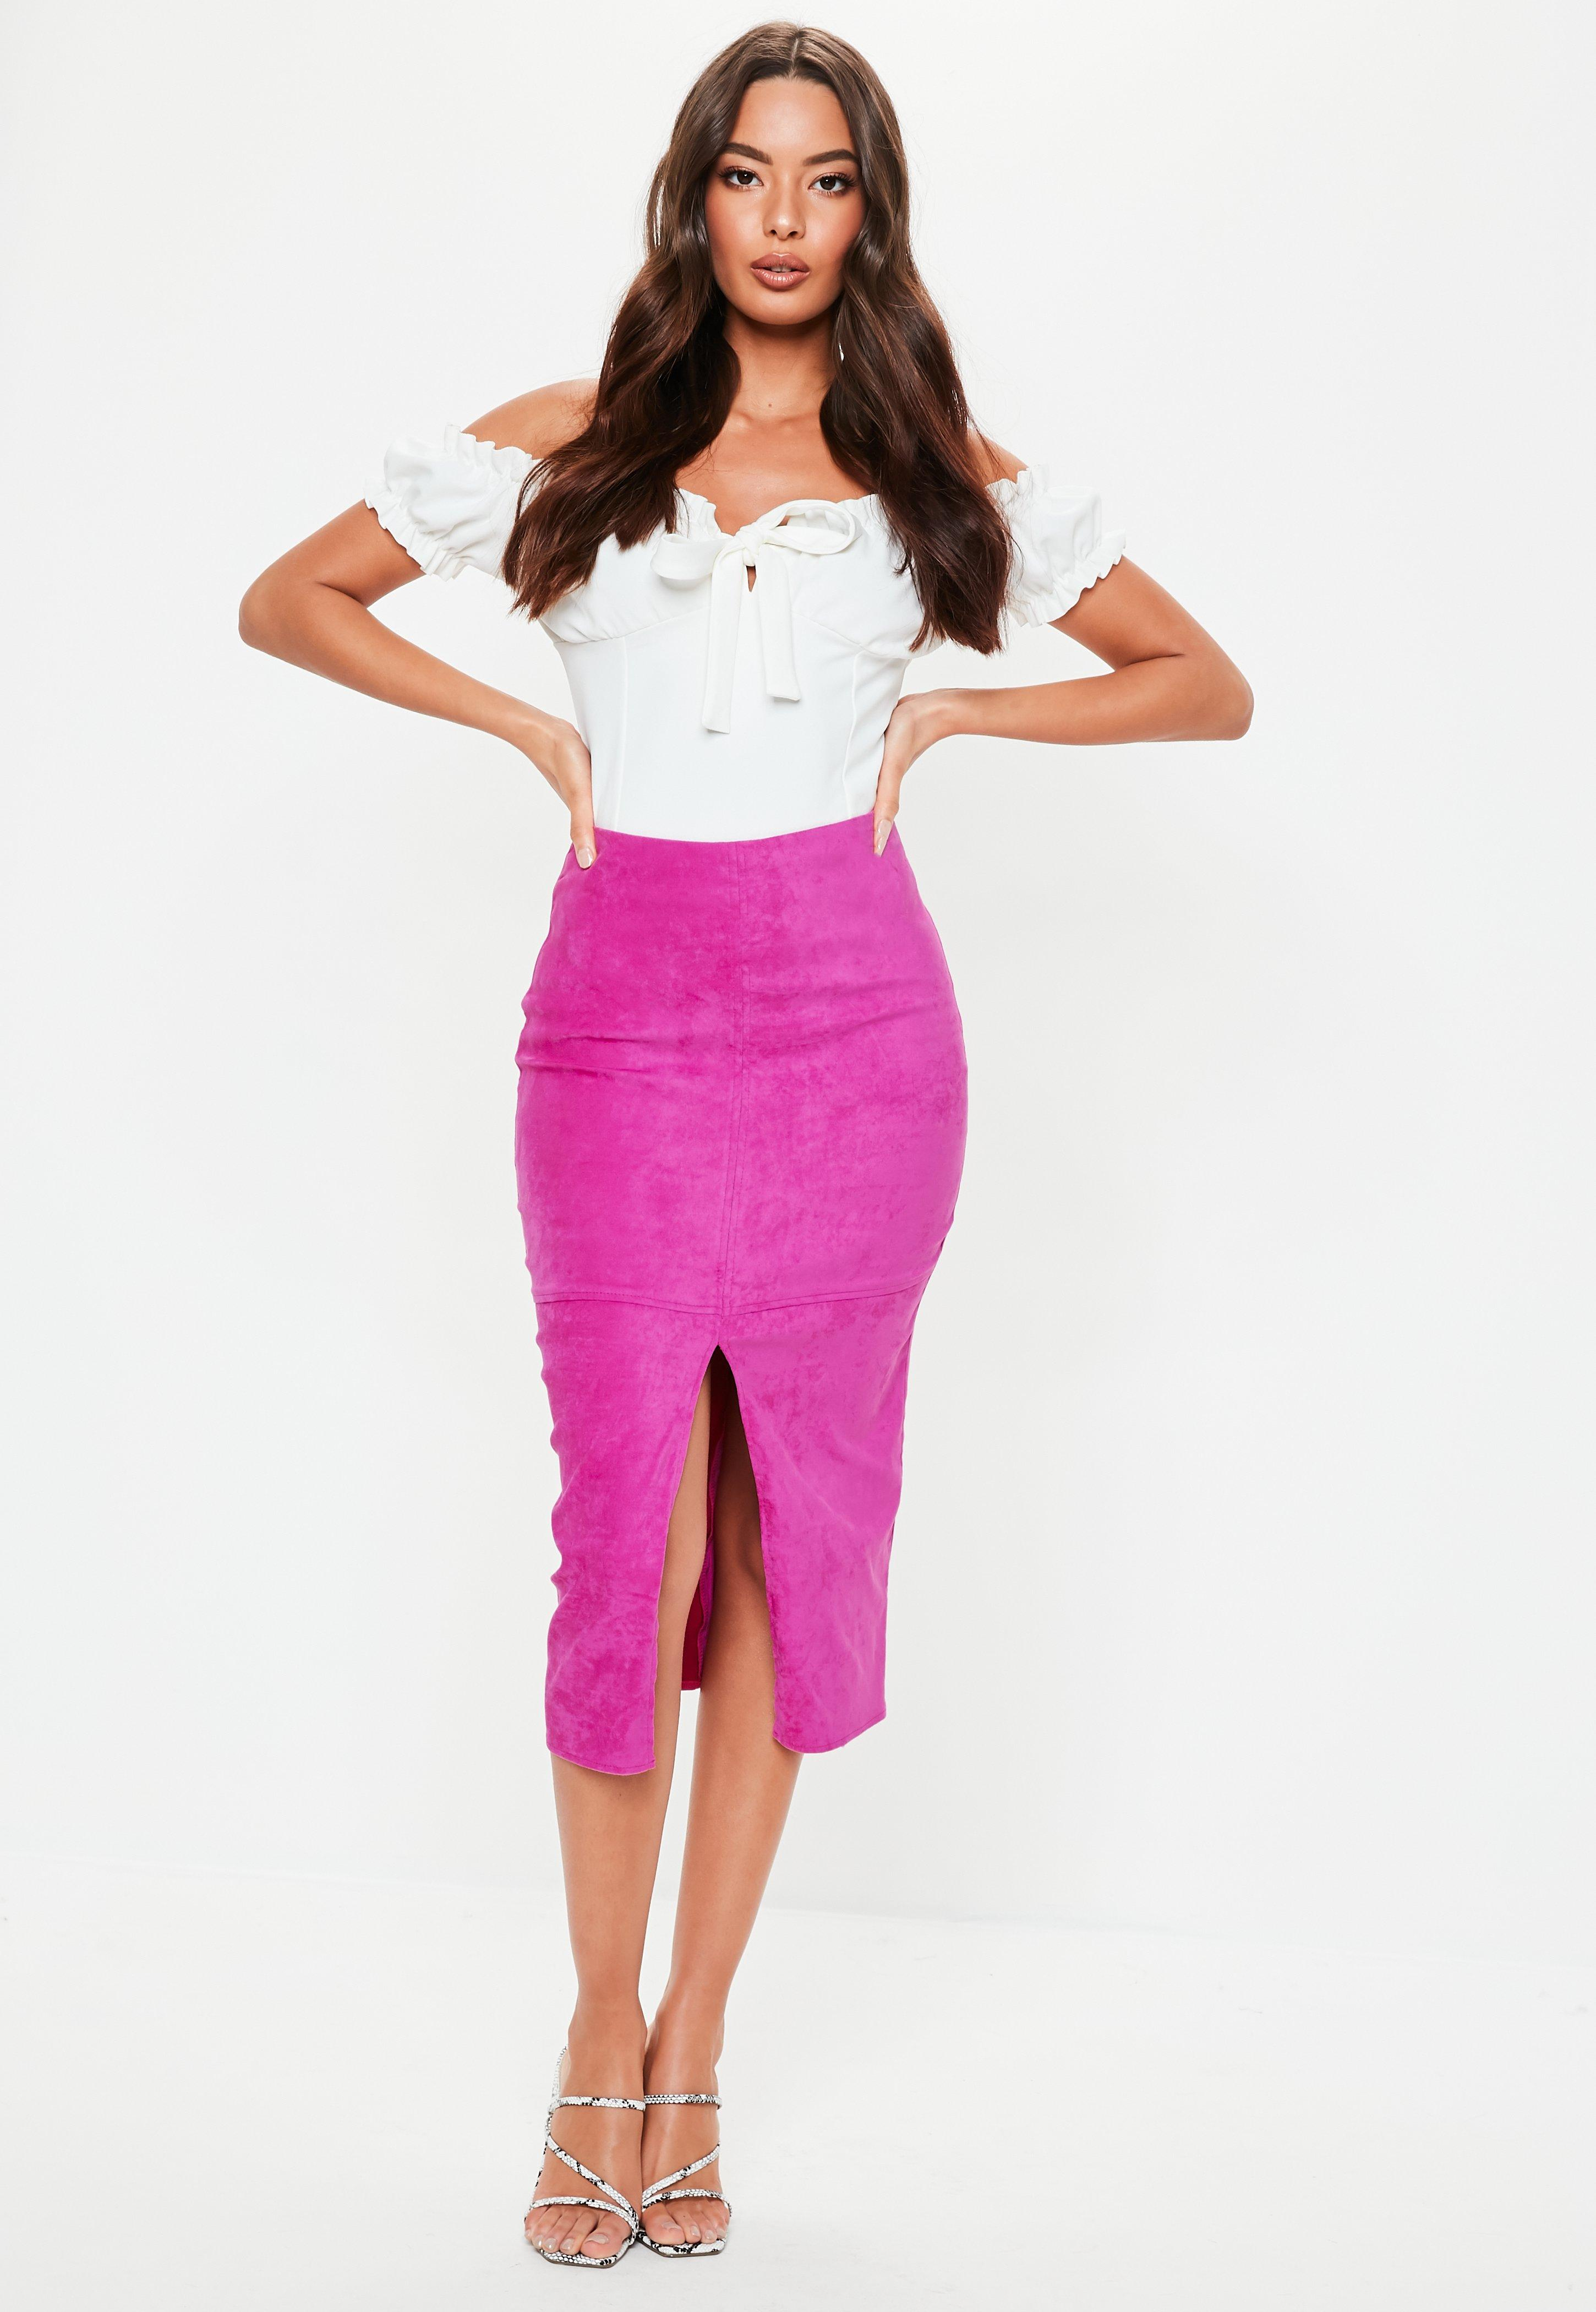 Missguided Missguided SkirtsFittedamp; Pencil Pencil SkirtsFittedamp; Pencil Tube SkirtsFittedamp; Tube Missguided Tube 8knXO0wP